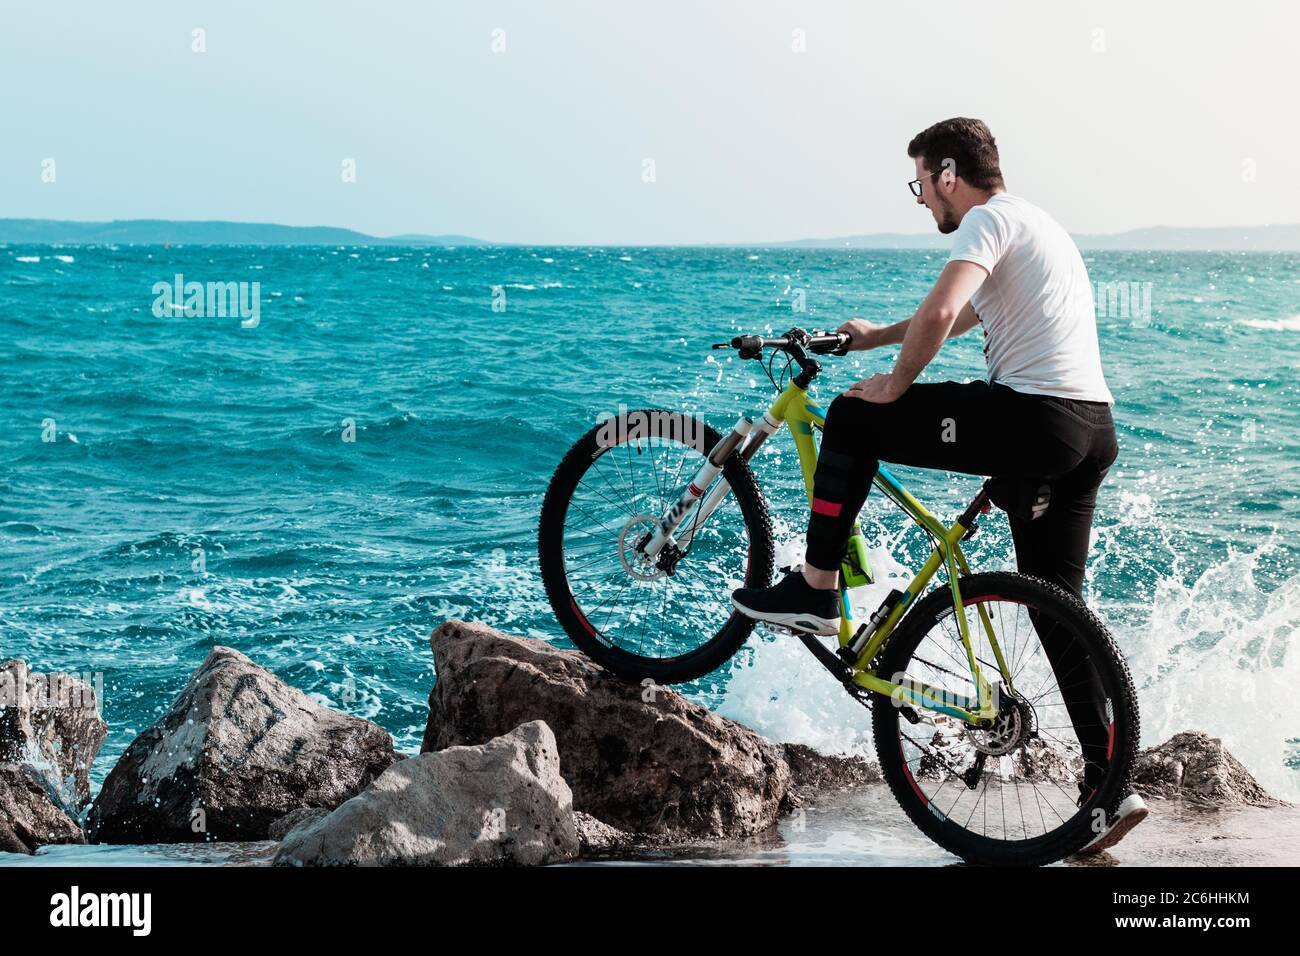 Man Standing Pose With Cycle High Resolution Stock Photography And Images Alamy